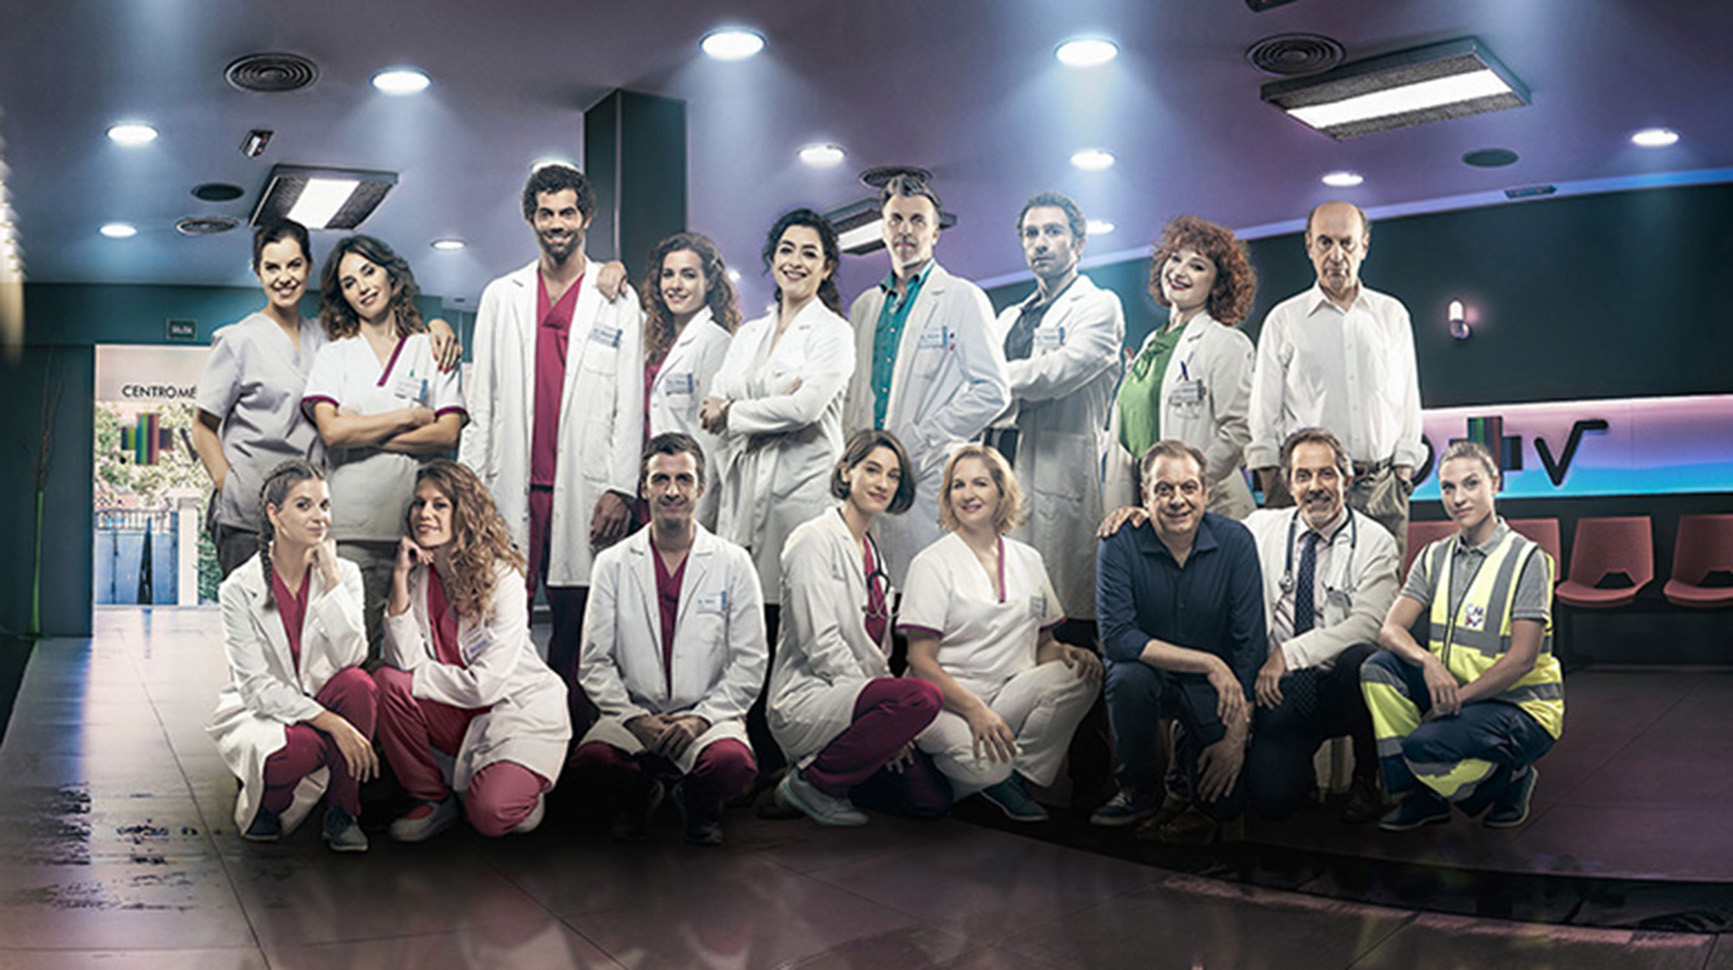 TVE makes appointment for more Centro Medico